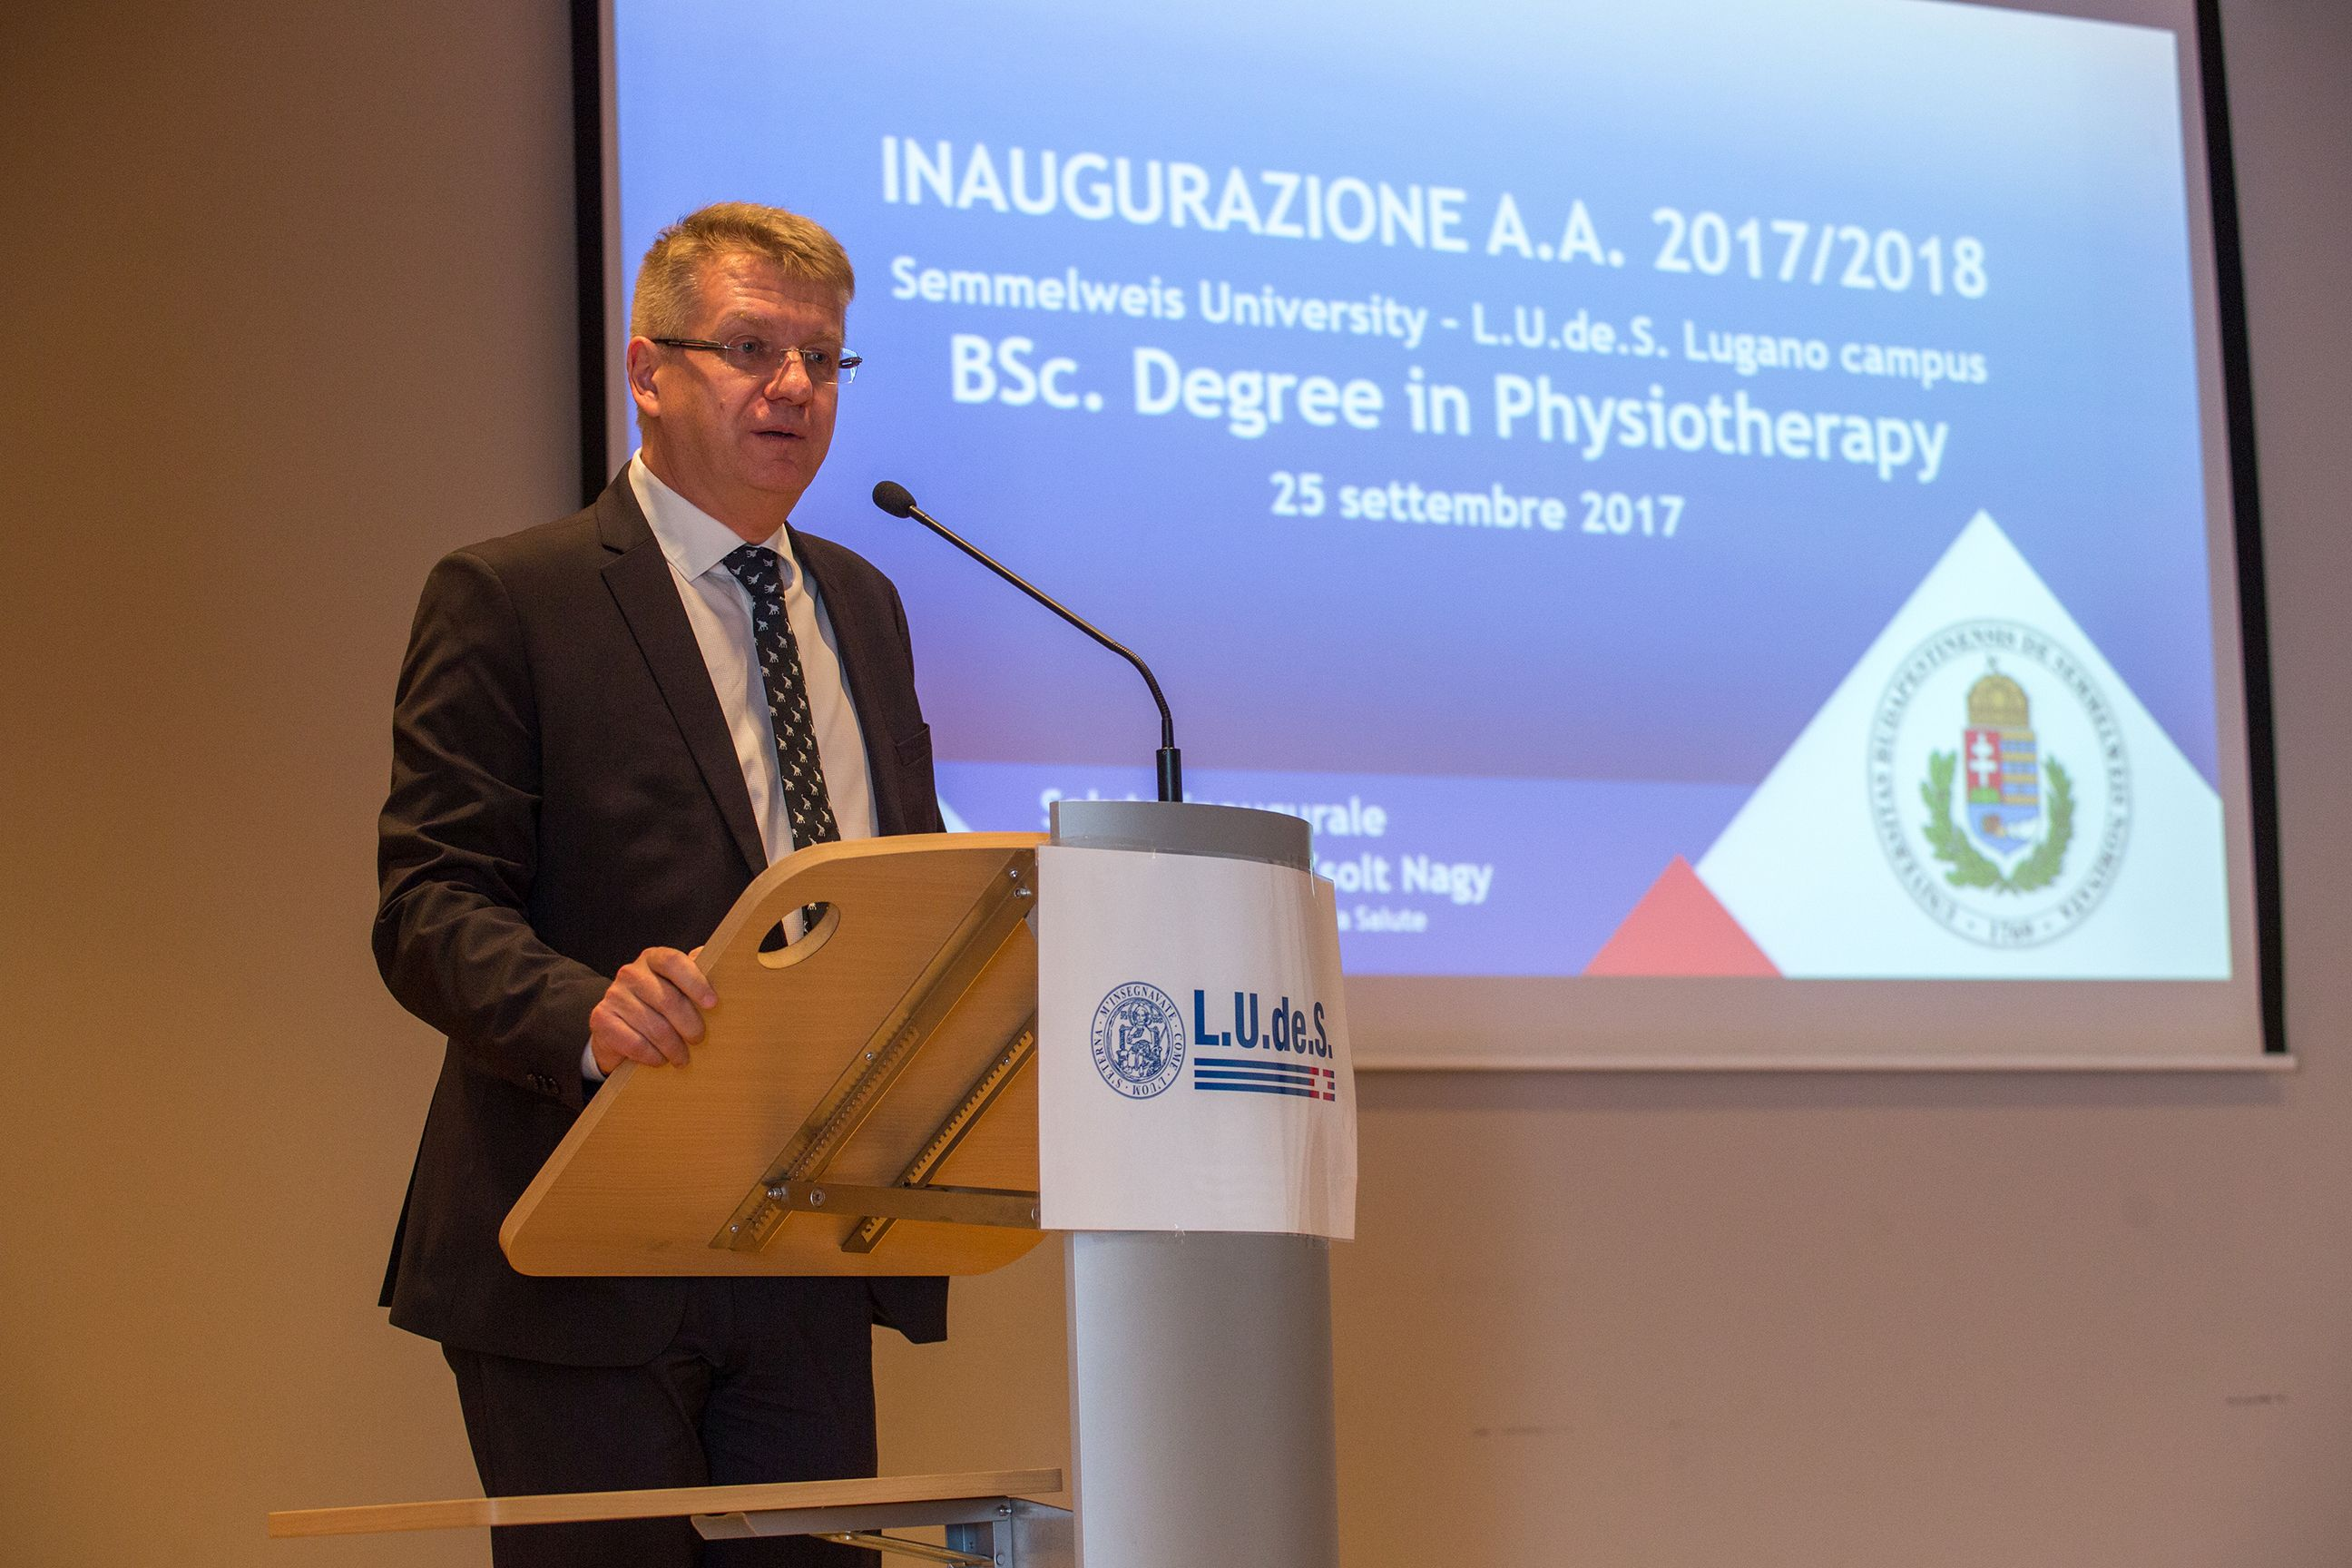 The new academic year was officially opened by Dr. Manuela Di Martino ce8fcd8bf2